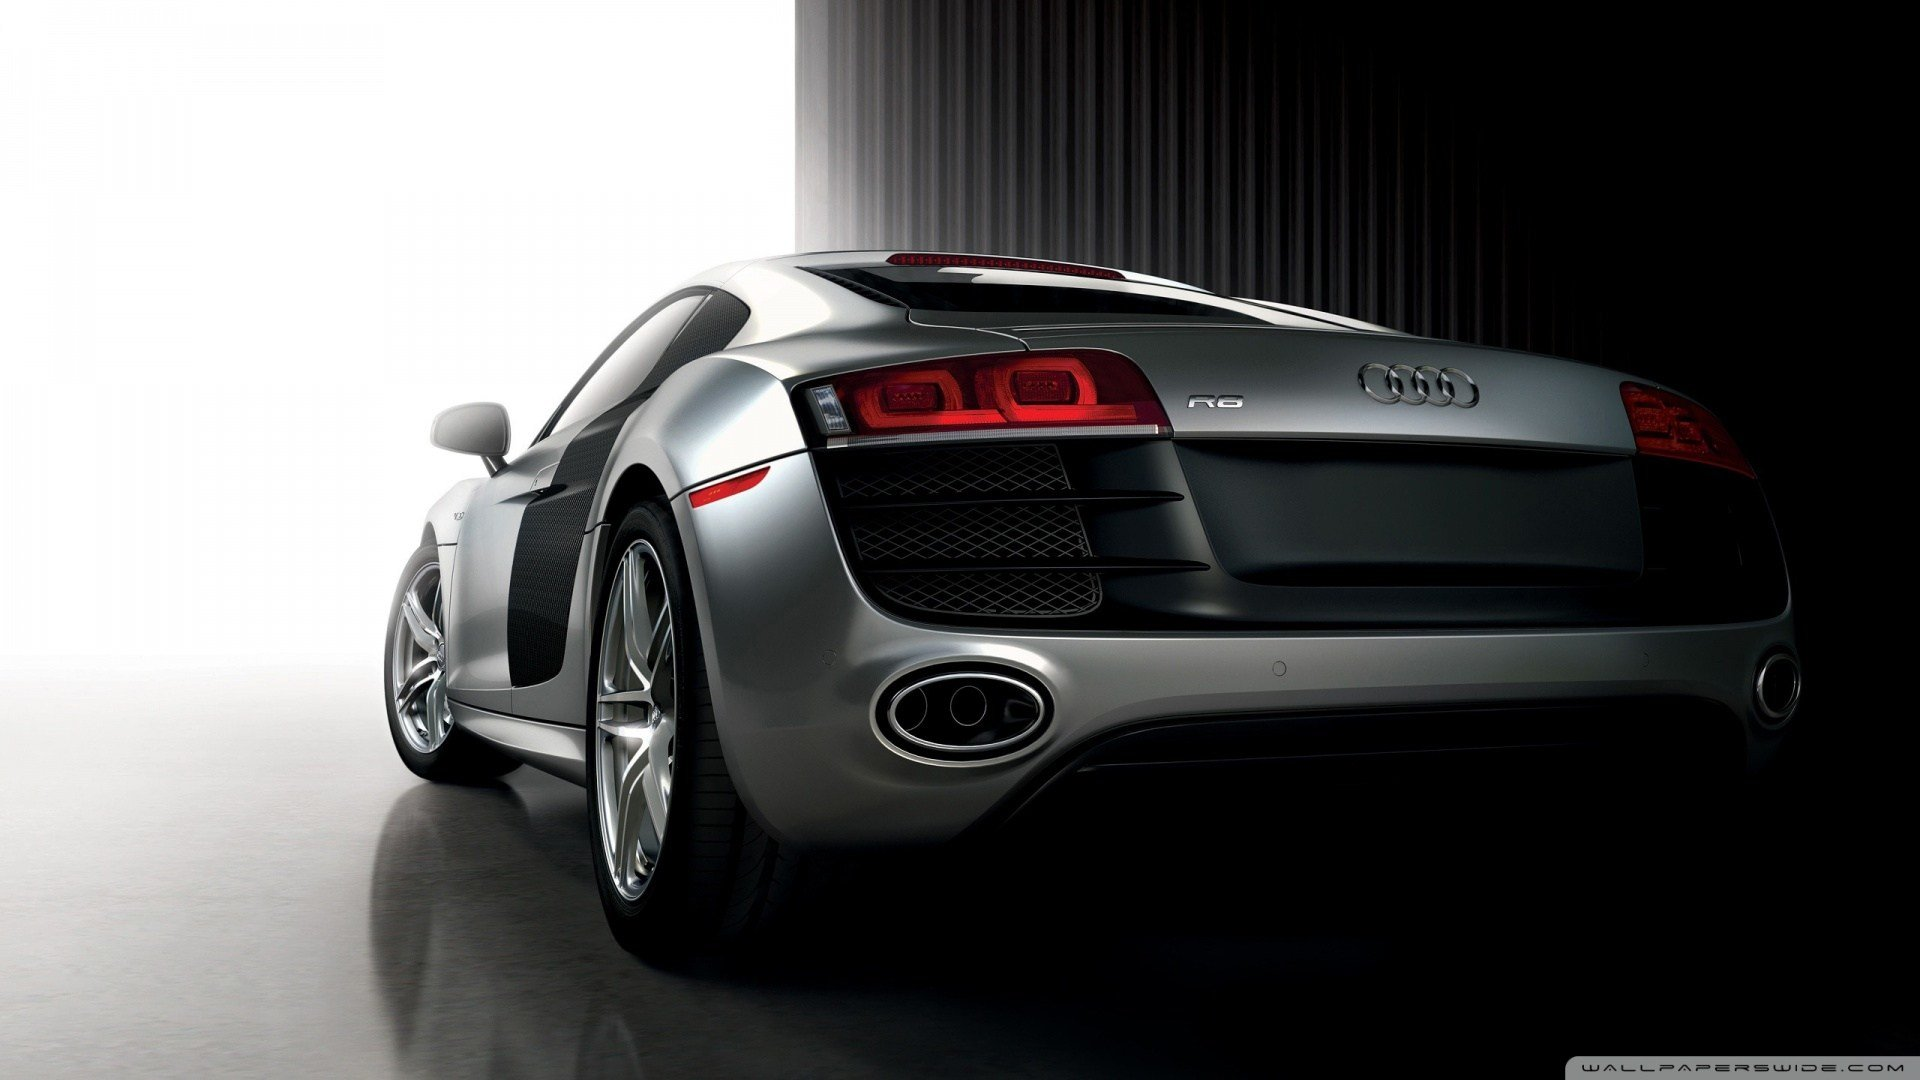 Latest 43 Audi Wallpapers Backgrounds In Hd For Free Download